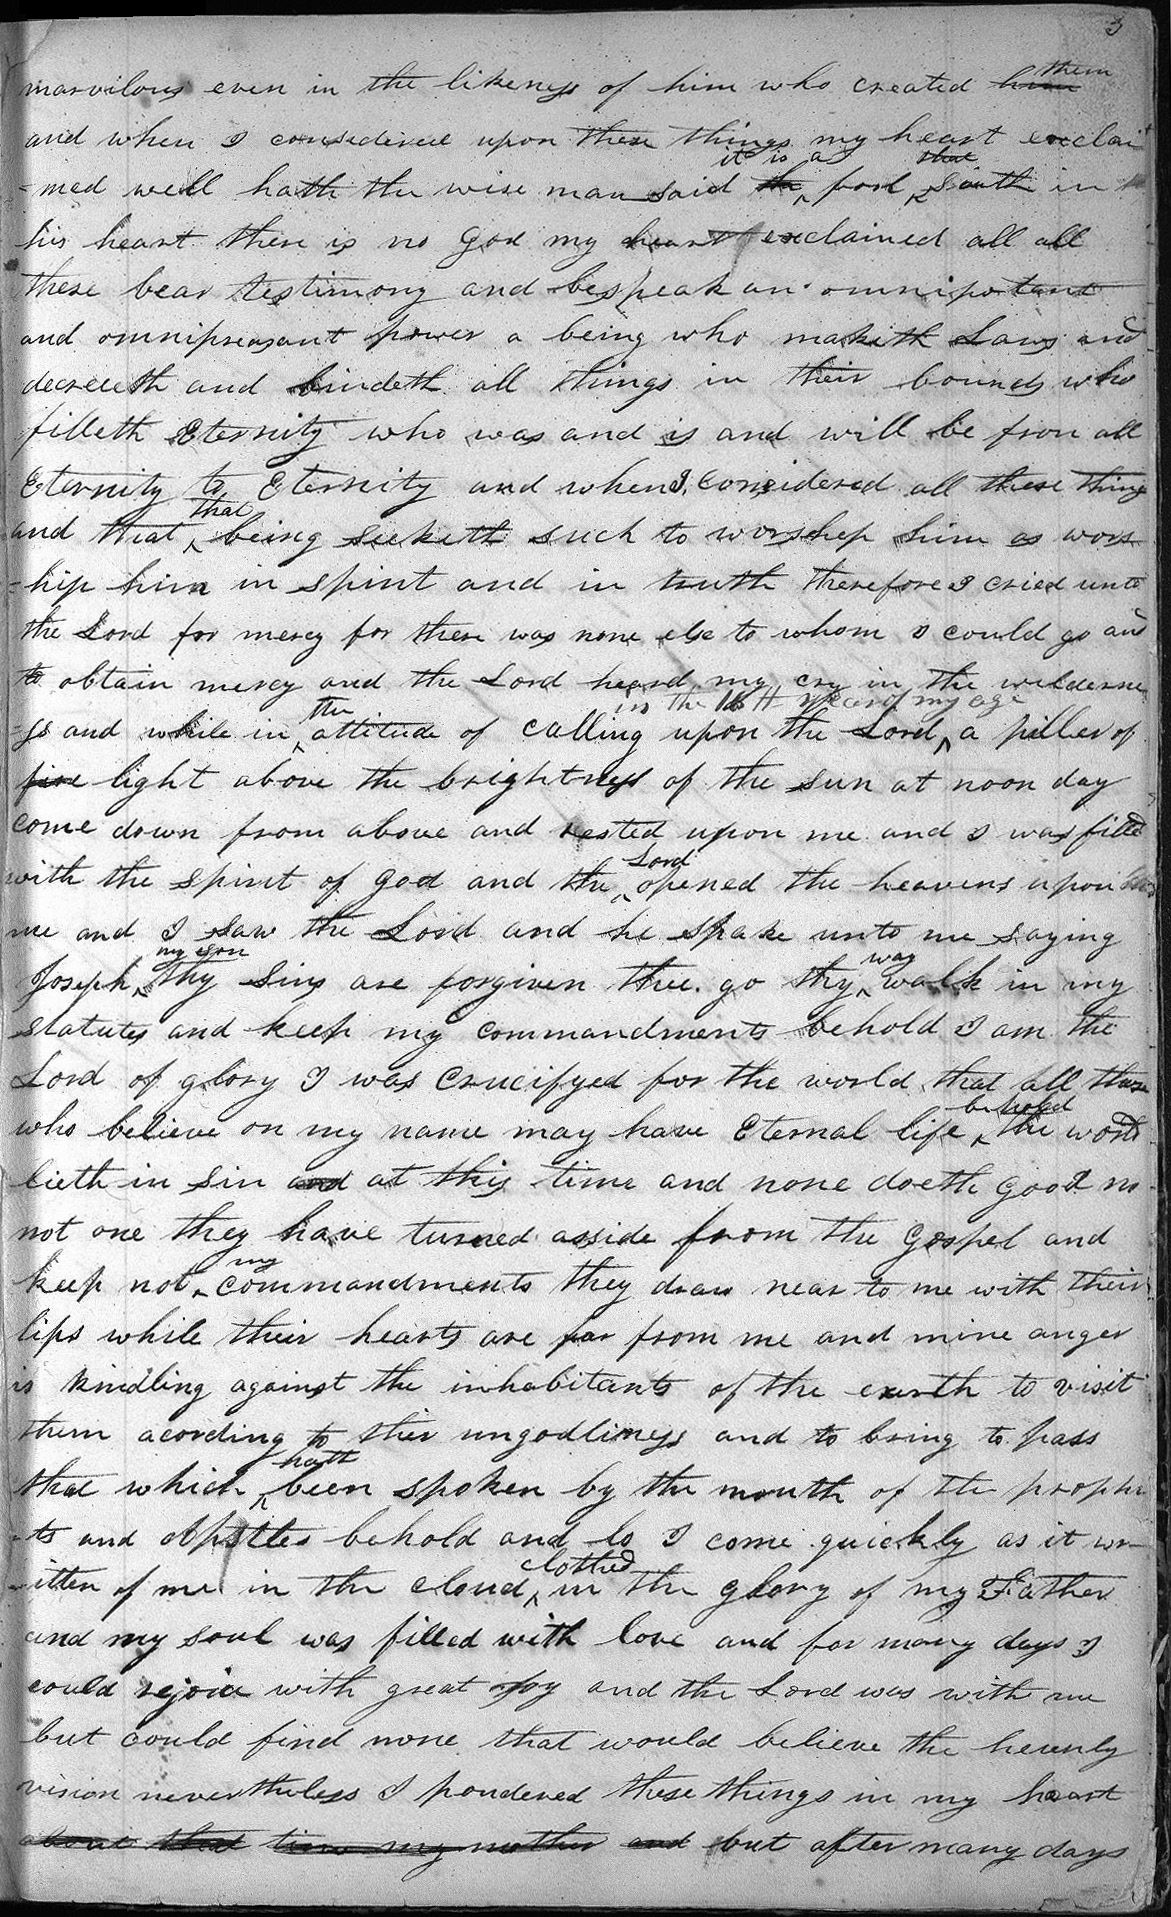 joseph smith essay Discusses joseph smith's introduction of polygamy into early mormon church subjects include polyandry, young brides, theology, children, and emma smith.